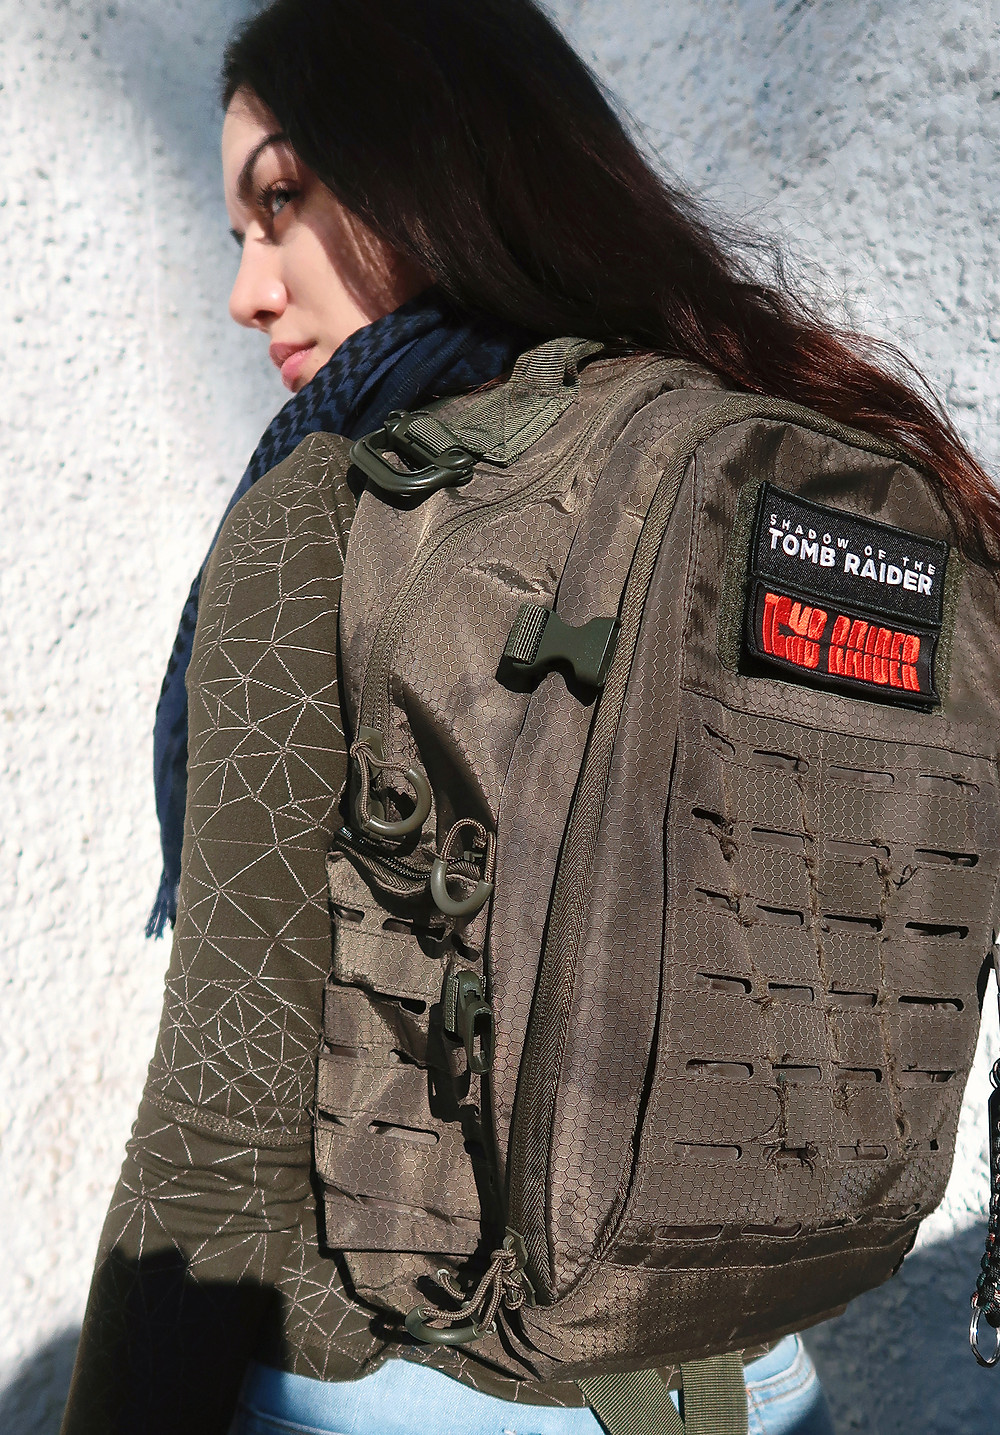 Tomb Raider Movie promotional backpack - Jade Sura